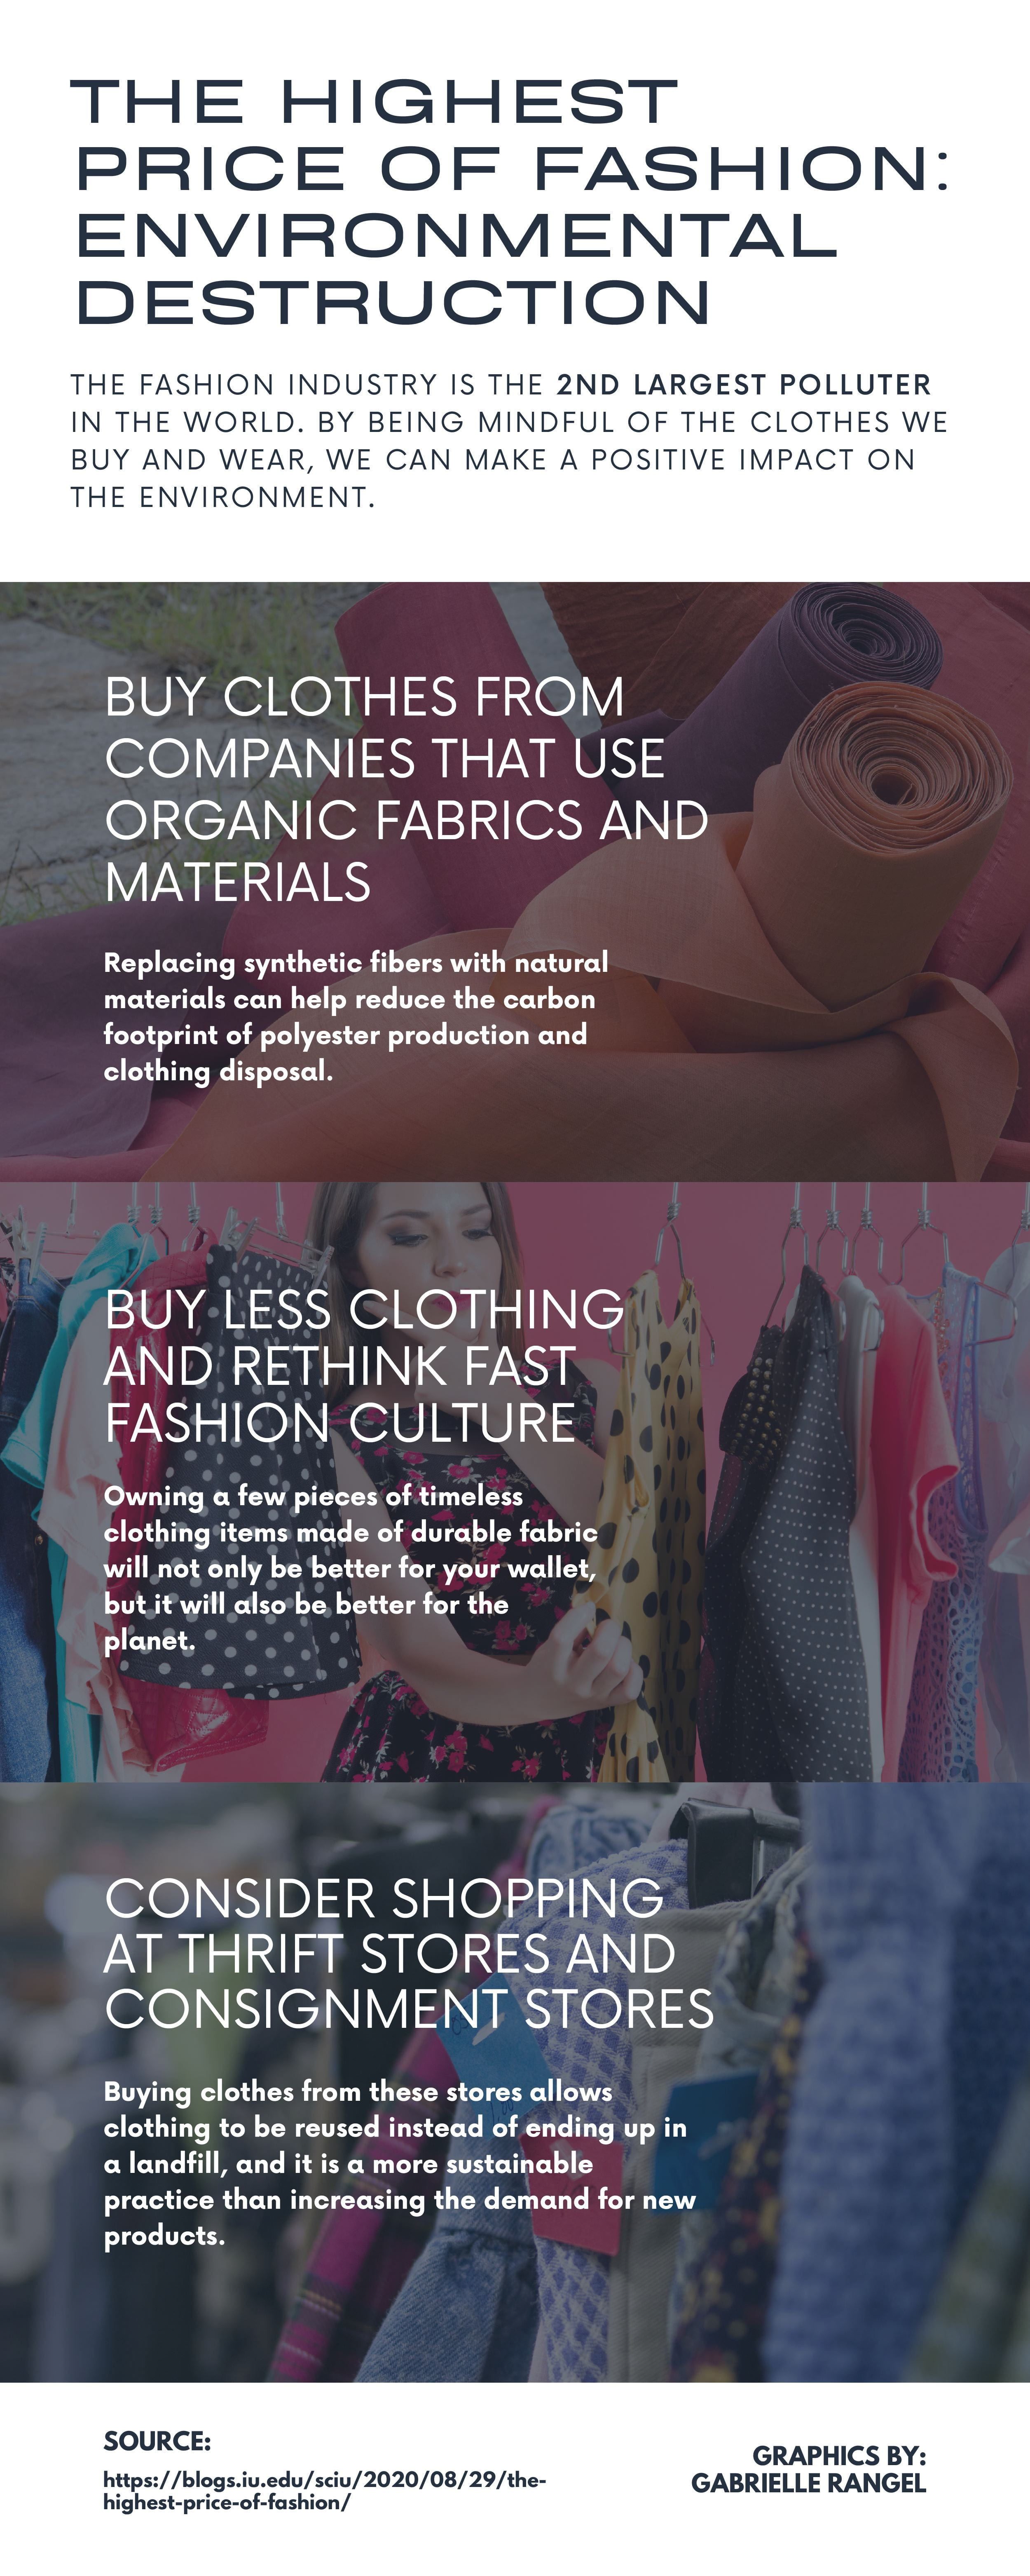 [infographic about environment friendly fashion. to read the original post go to https://blogs.iu.edu/sciu/2020/08/29/the-highest-price-of-fashion/]